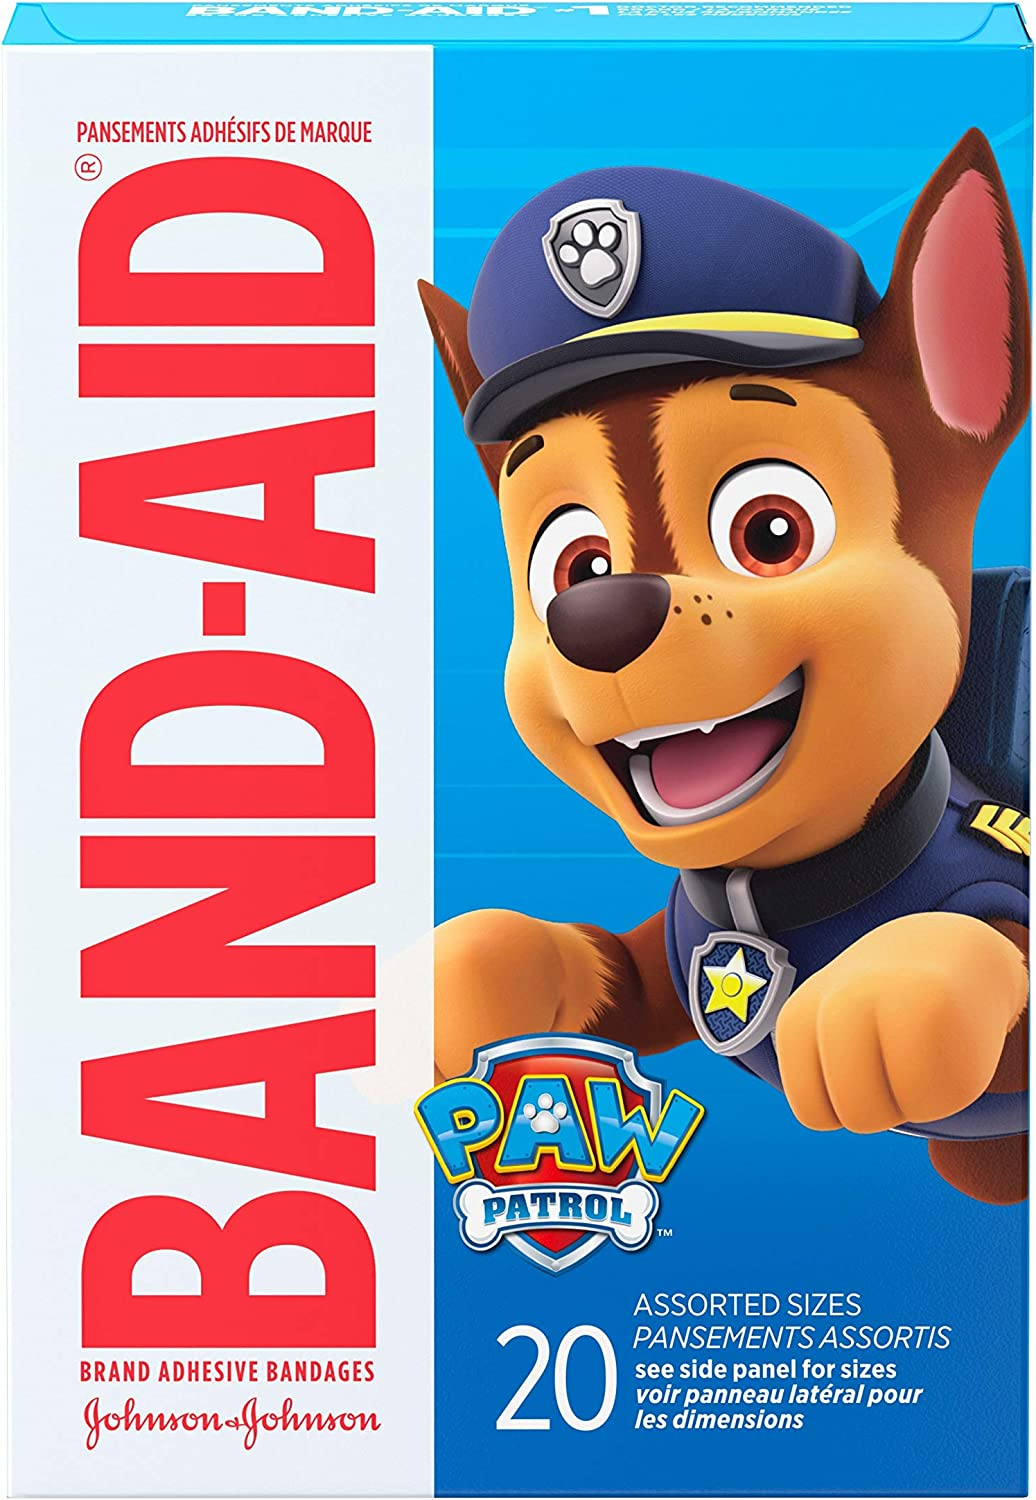 Amazon Com Band Aid Brand Adhesive Bandages For Minor Cuts Scrapes Wound Care Featuring Nickelodeon Paw Patrol Characters For Kids And Toddlers Assorted Sizes 20 Ct Health Personal Care